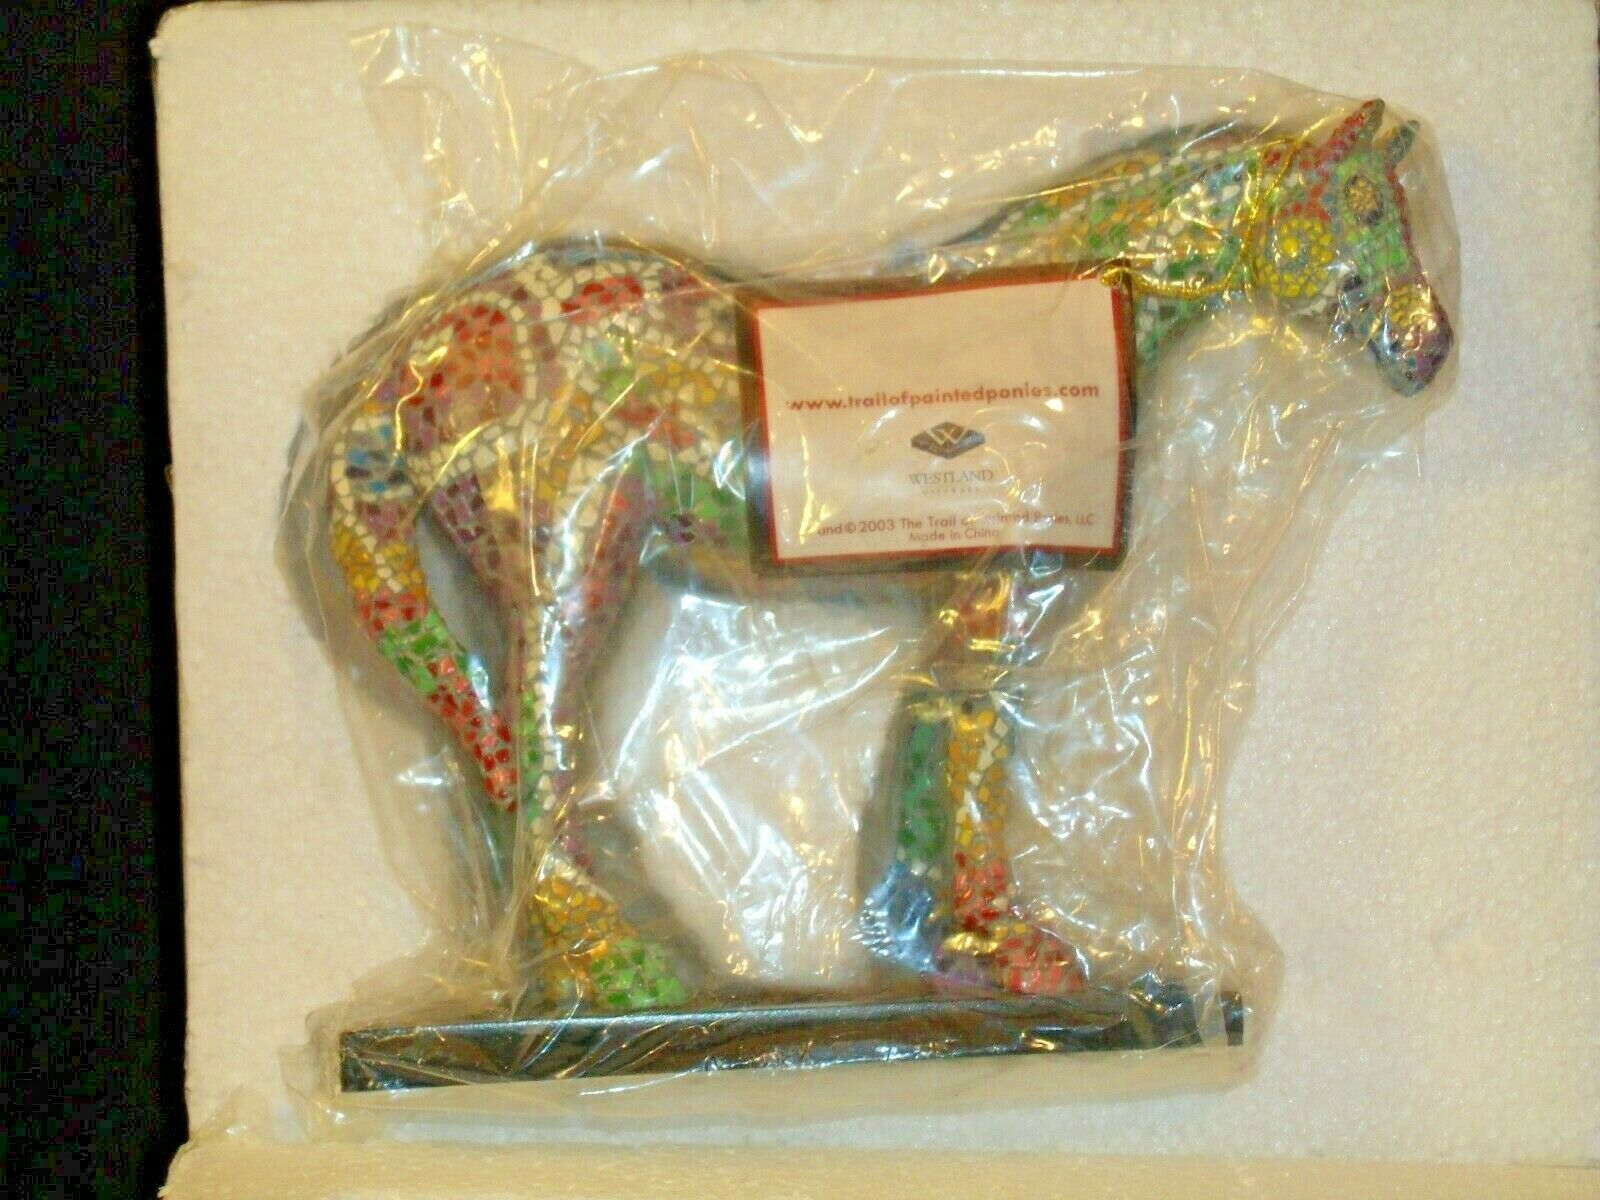 Trail Of Painted Ponies #1456 Caballo Brillante Westland Giftware AA-191989 Co